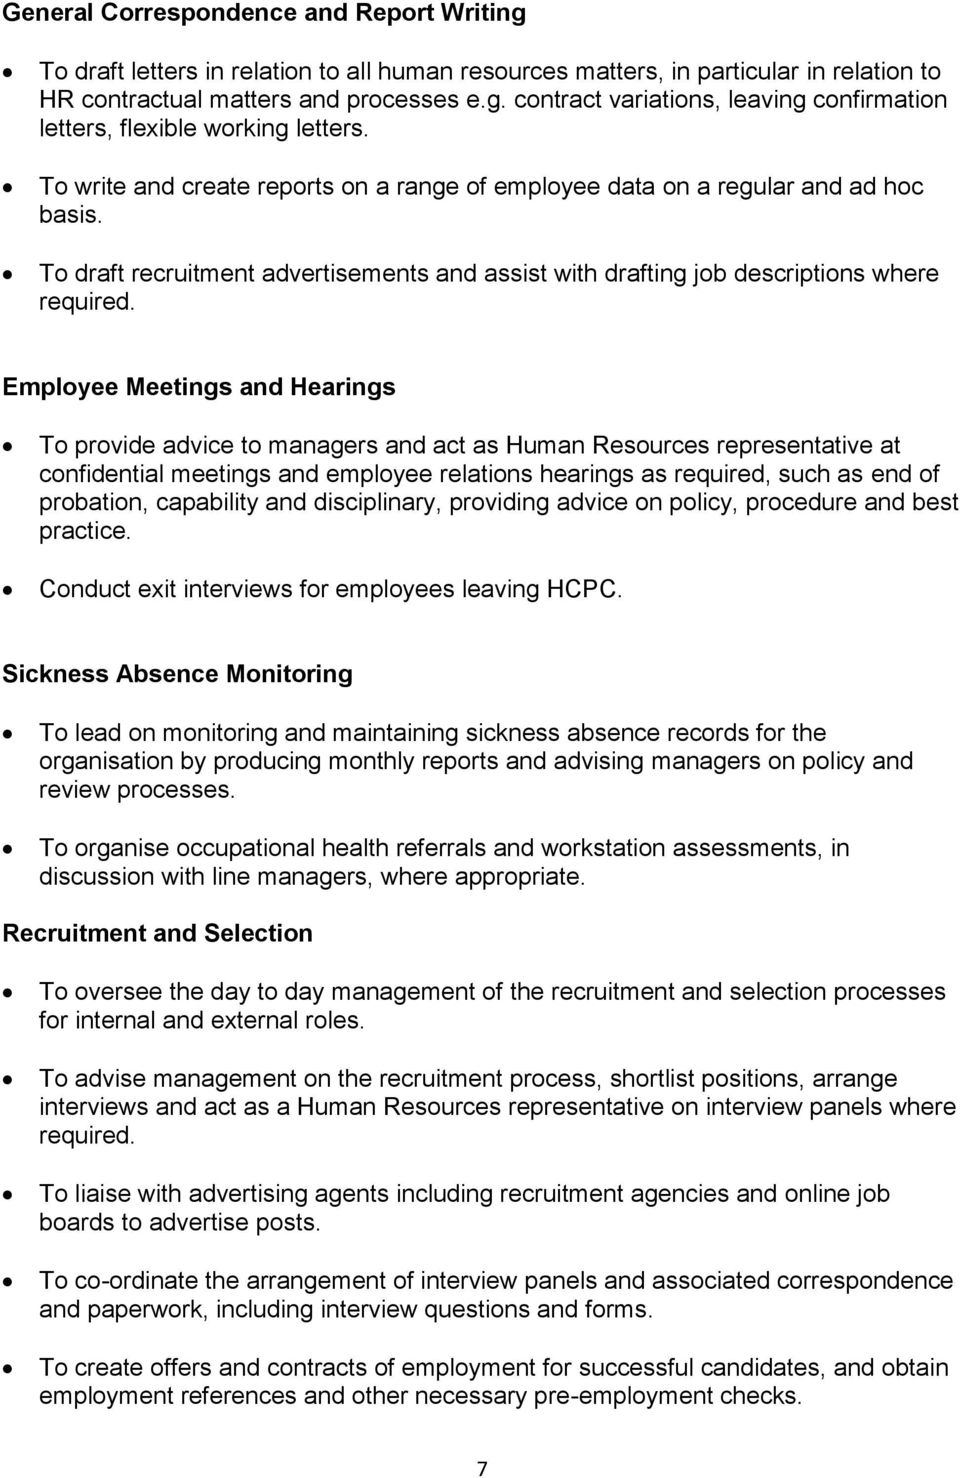 Human Resources Advisor 12 month fixed term contract - PDF